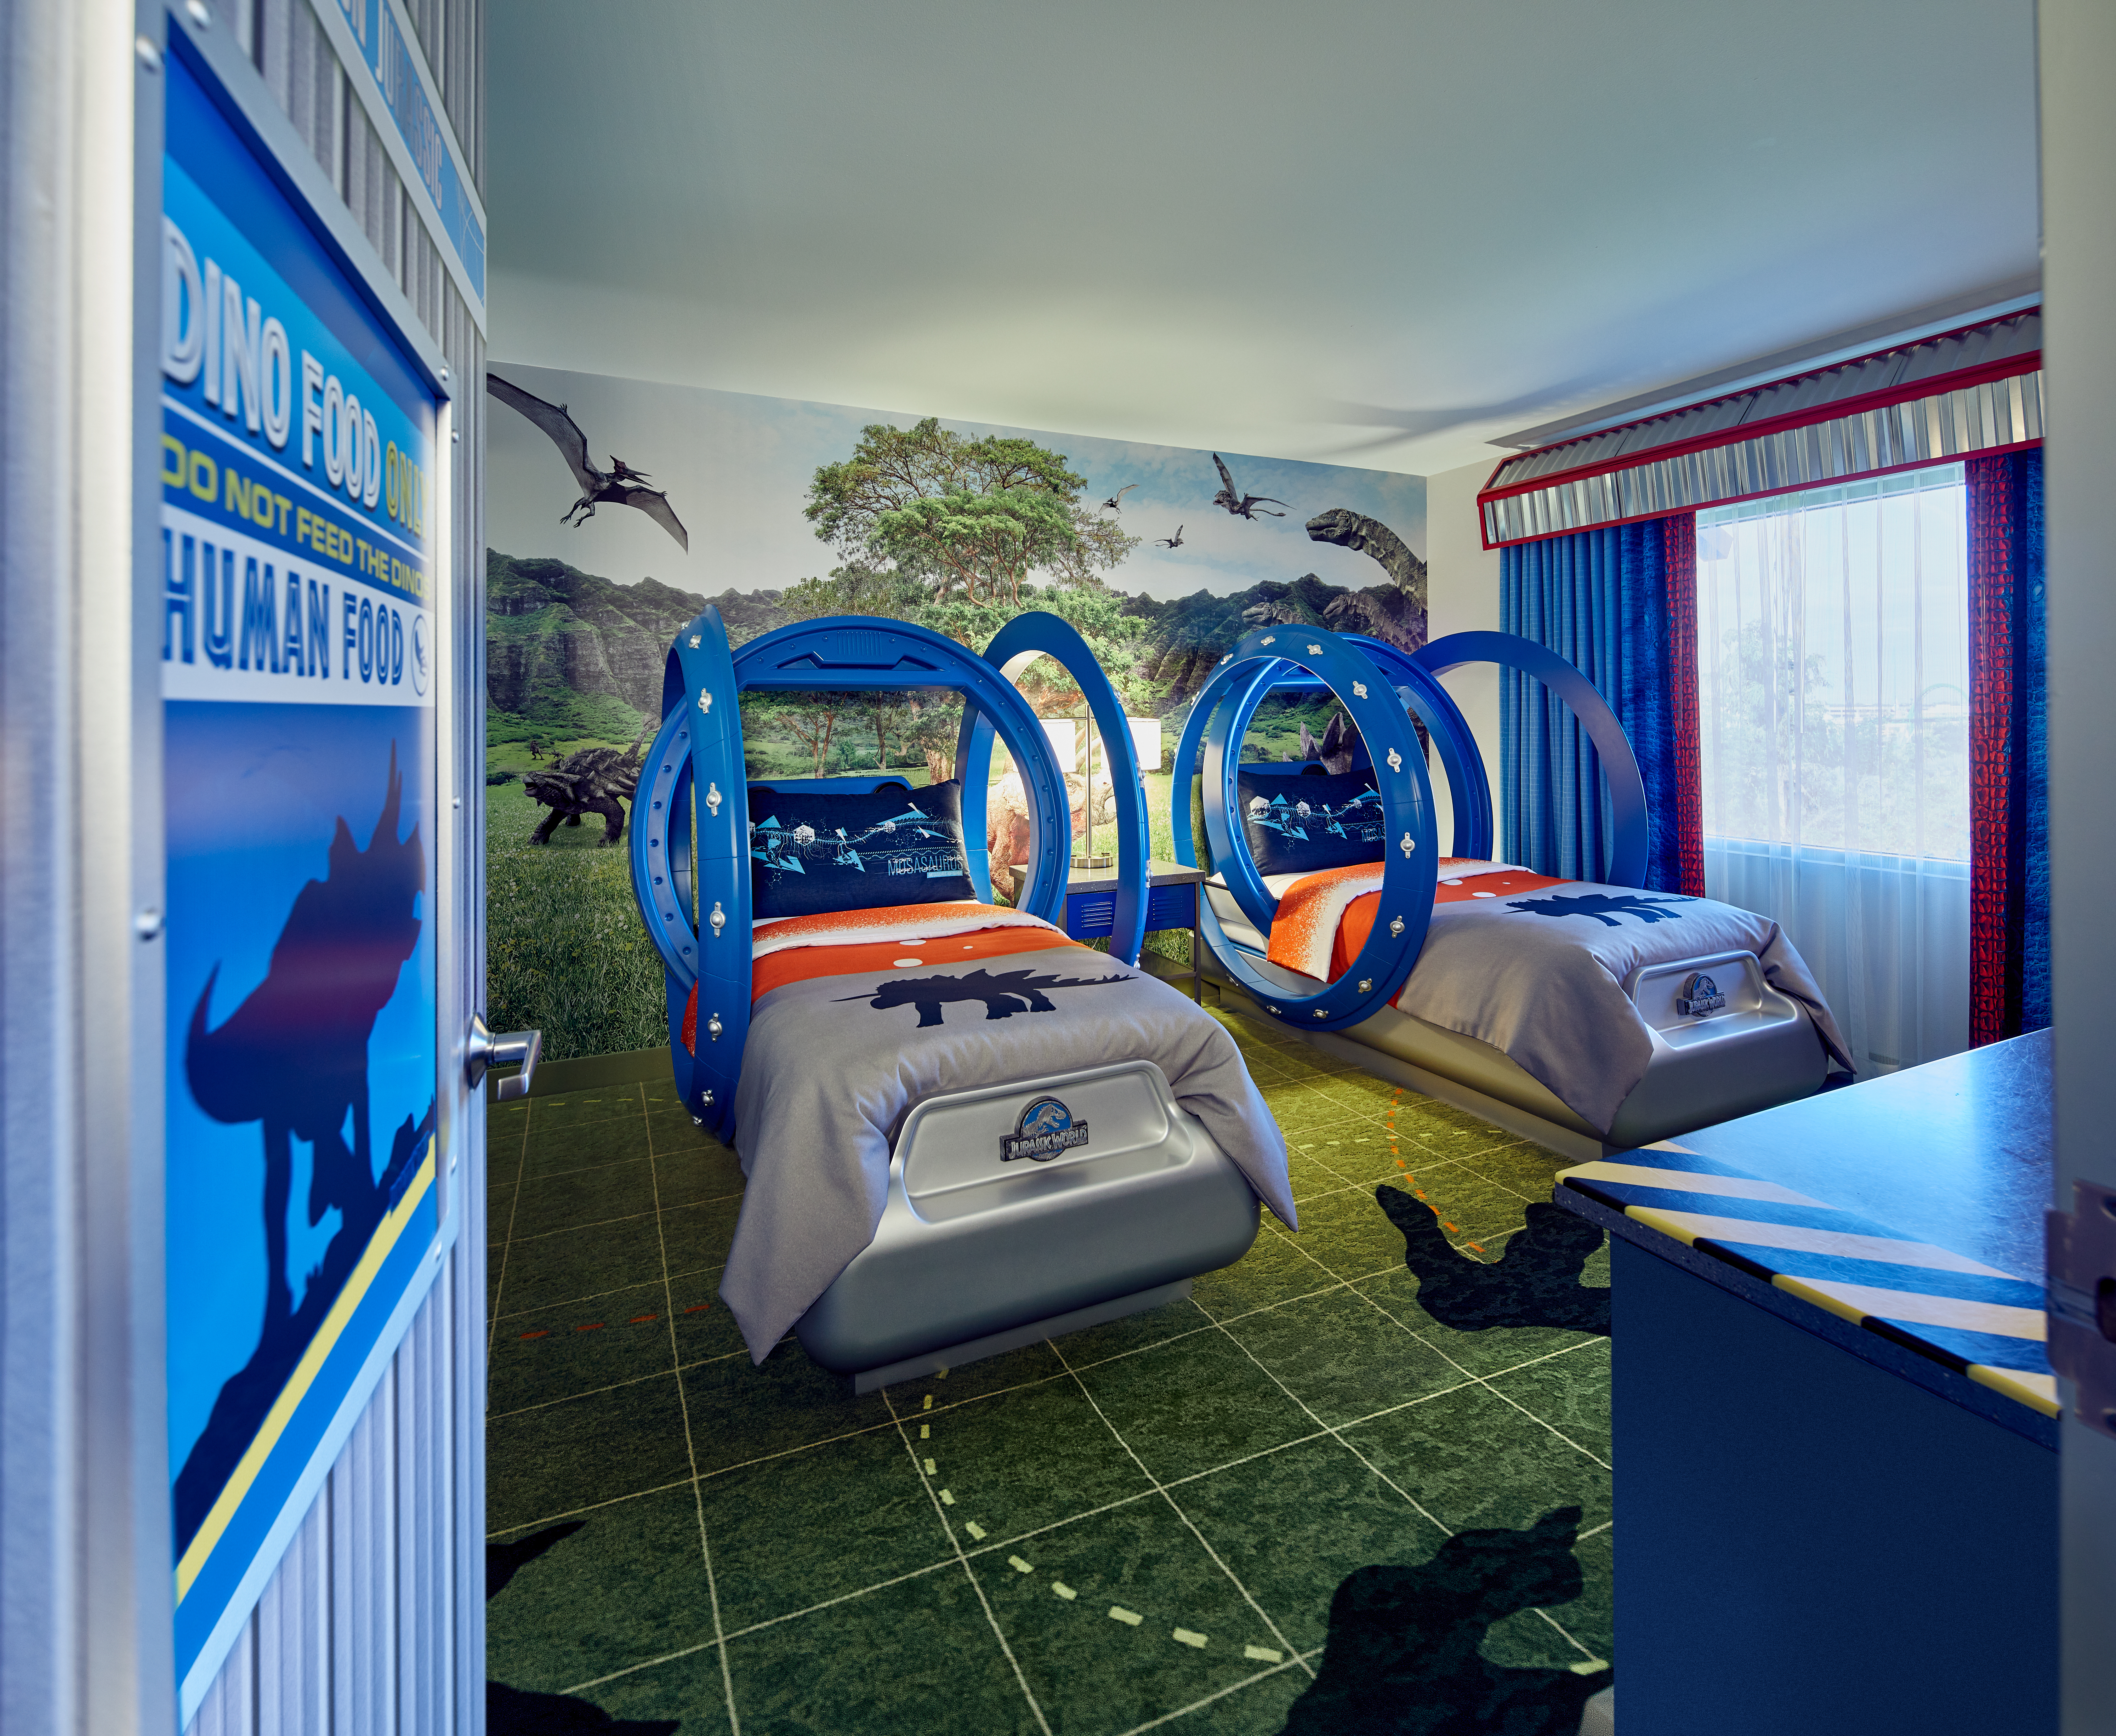 The kids room themed to Jurassic World with gyrosphere beds